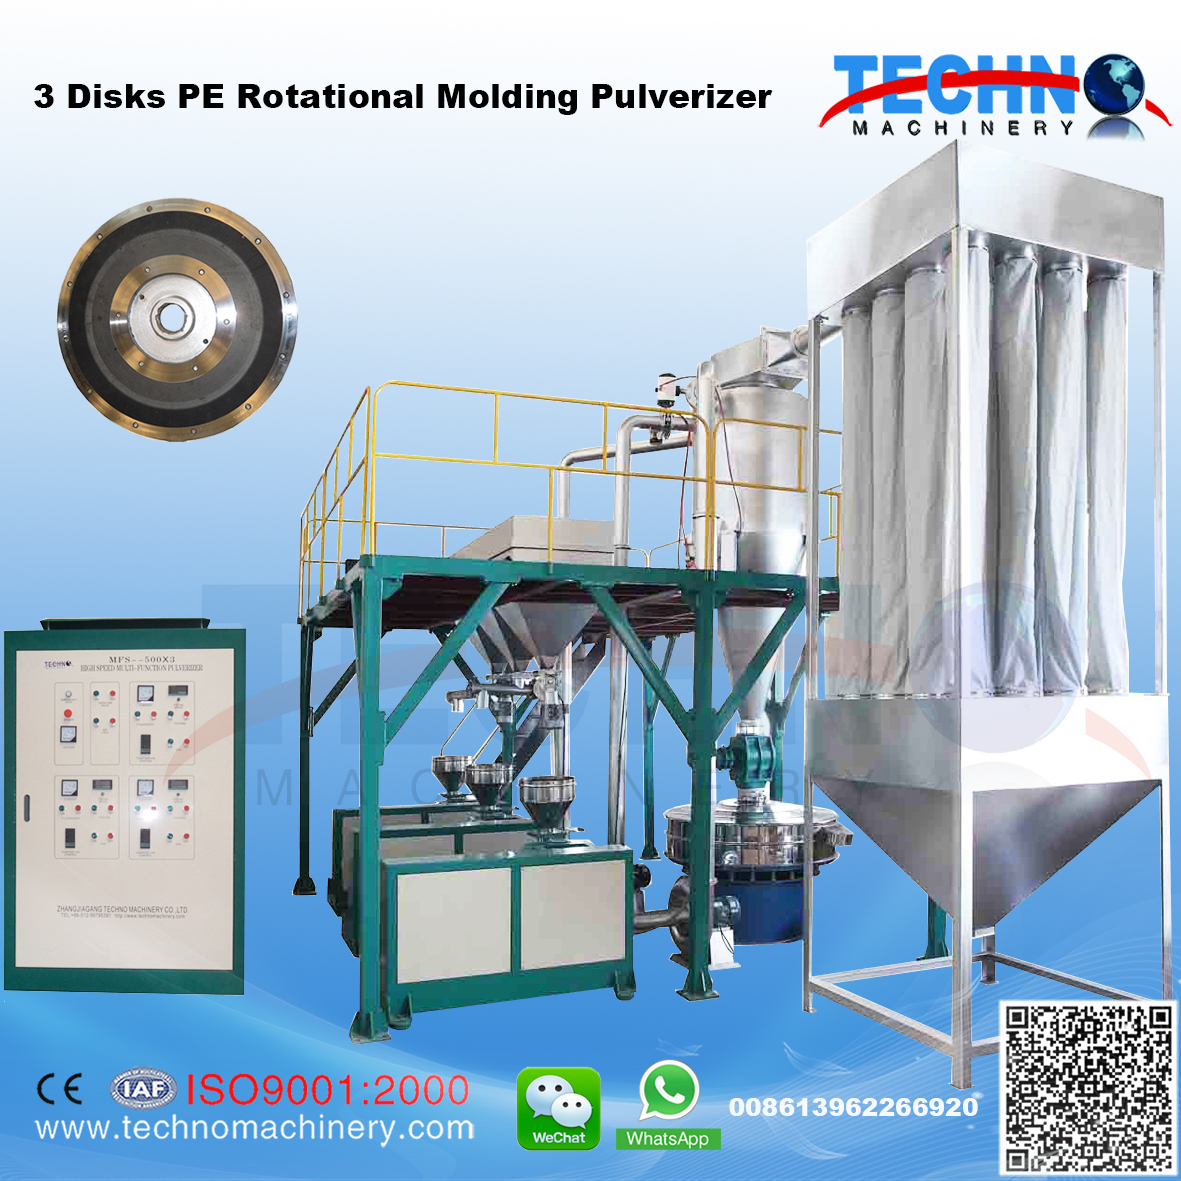 3 Disks Plastic Rotational Molding Pulverizer